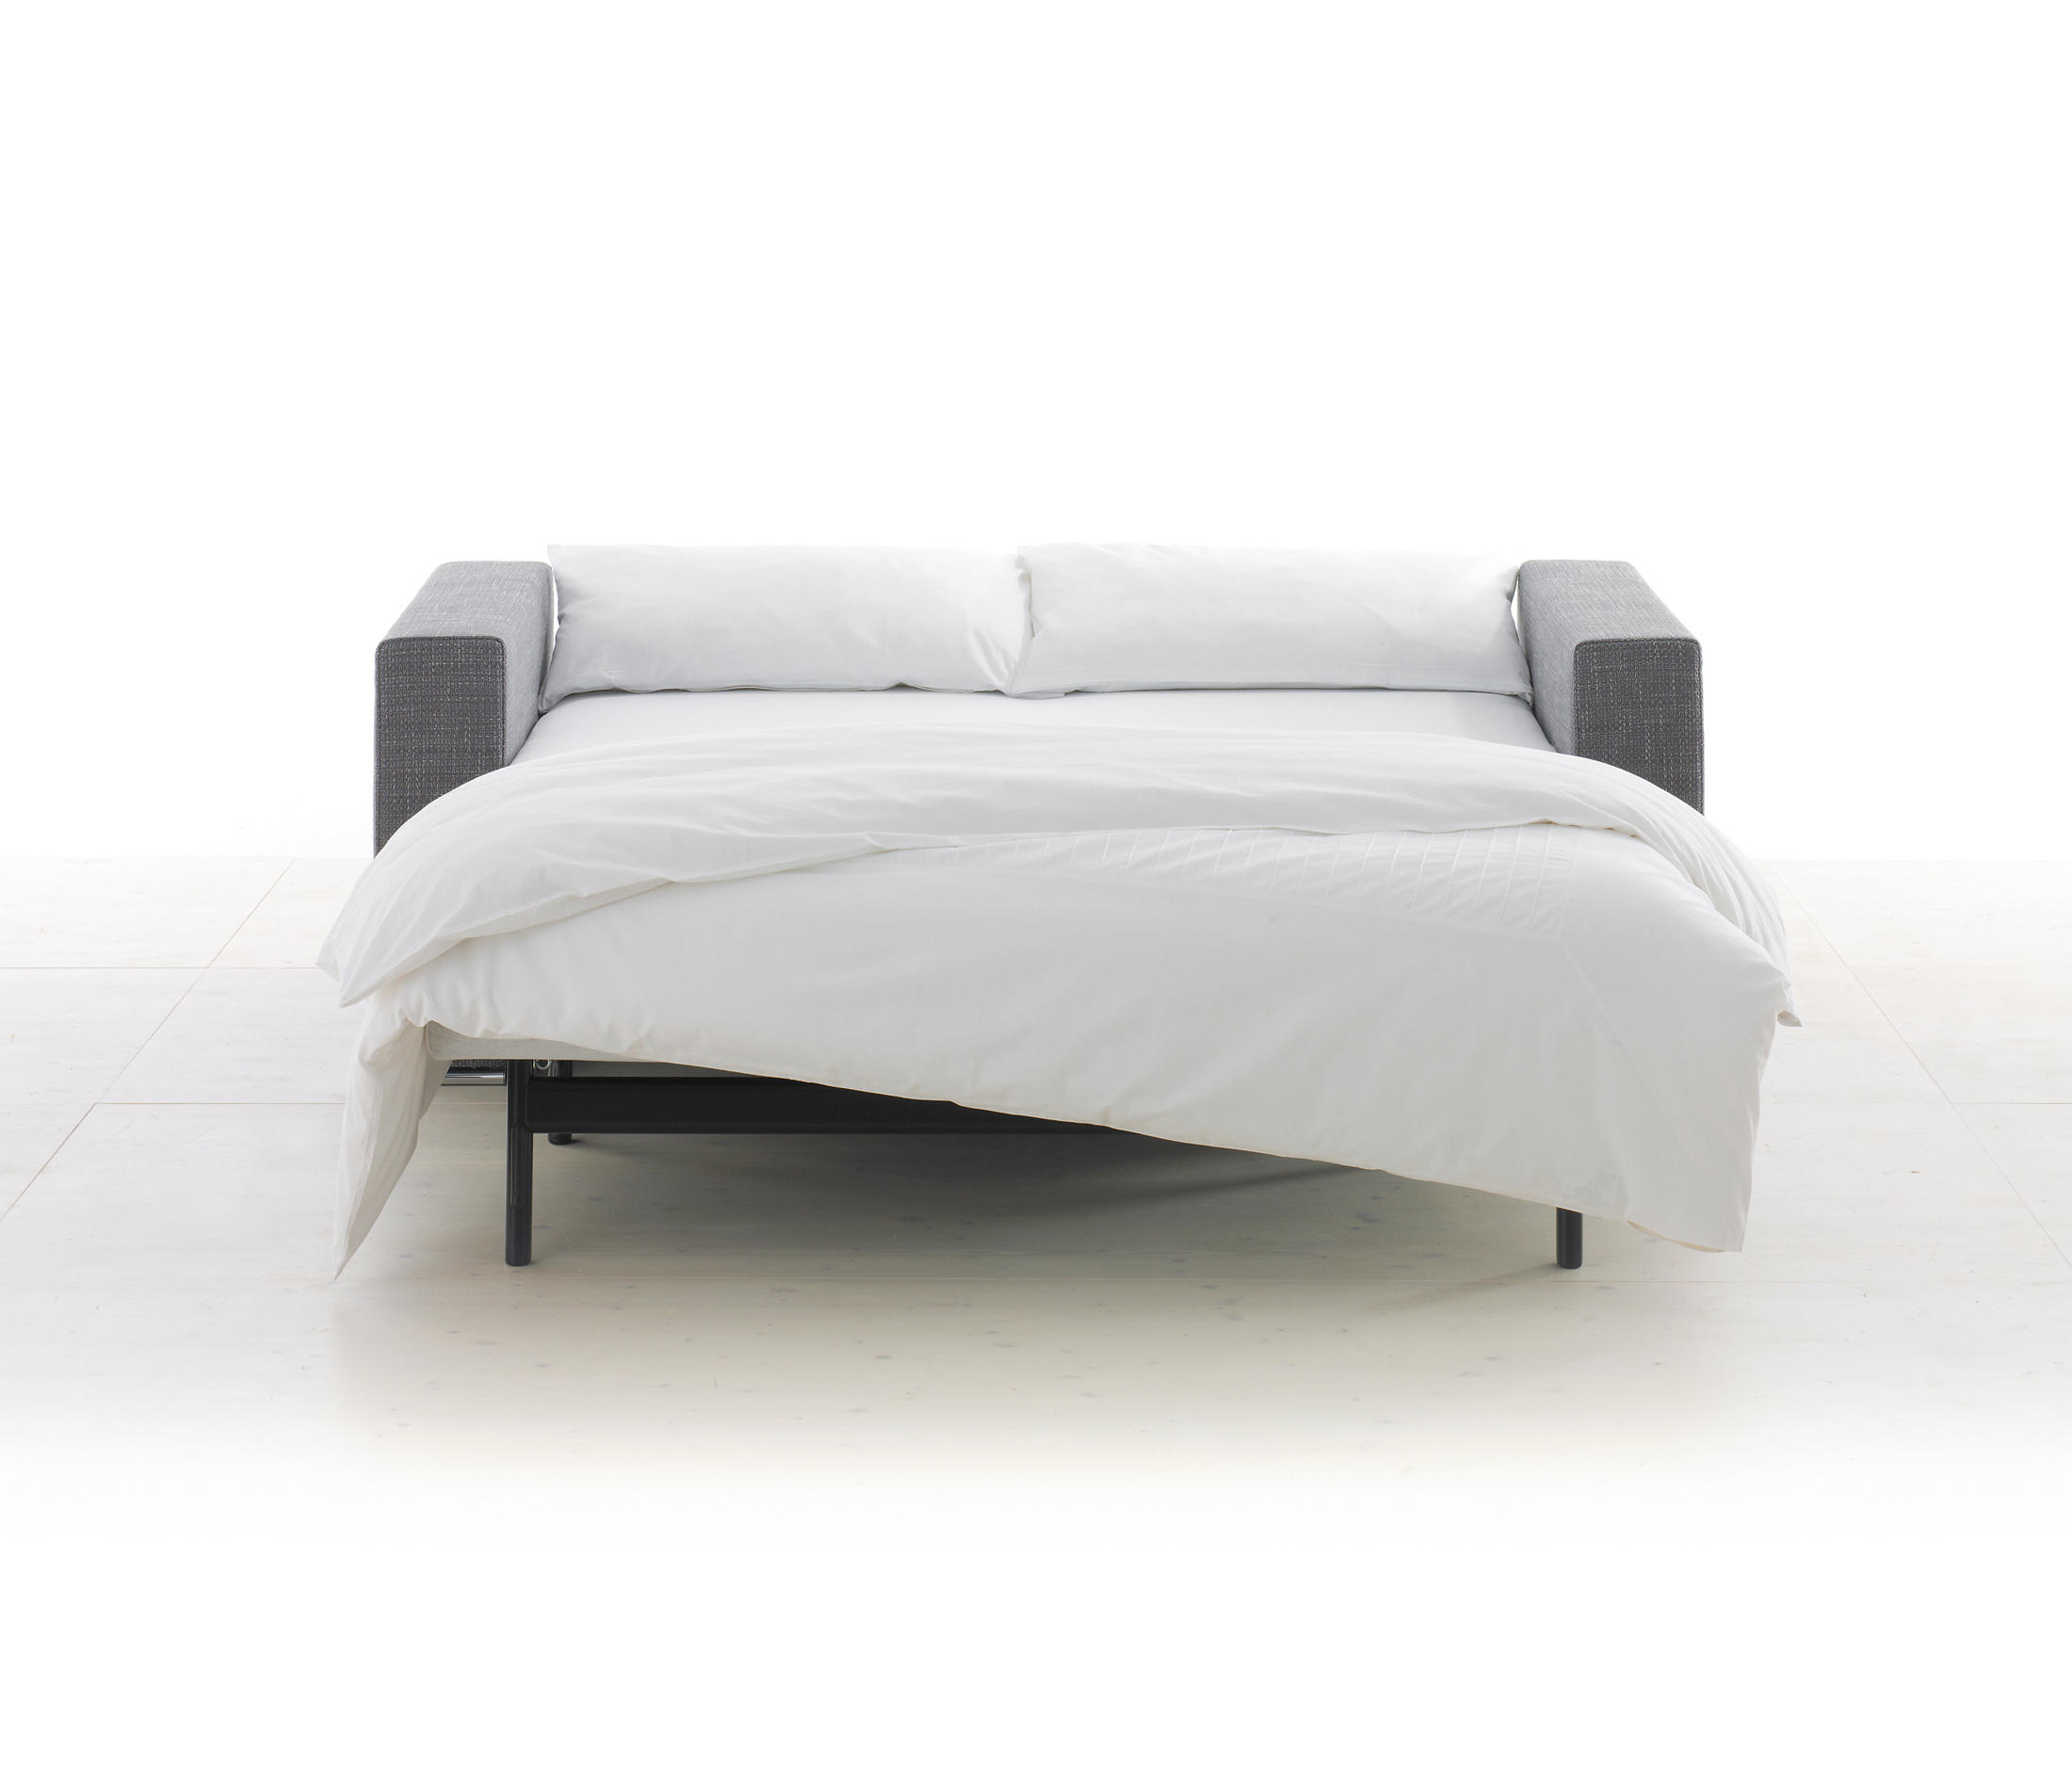 Loop Sessel Loop Bettsofa - Sofas Von Die Collection | Architonic